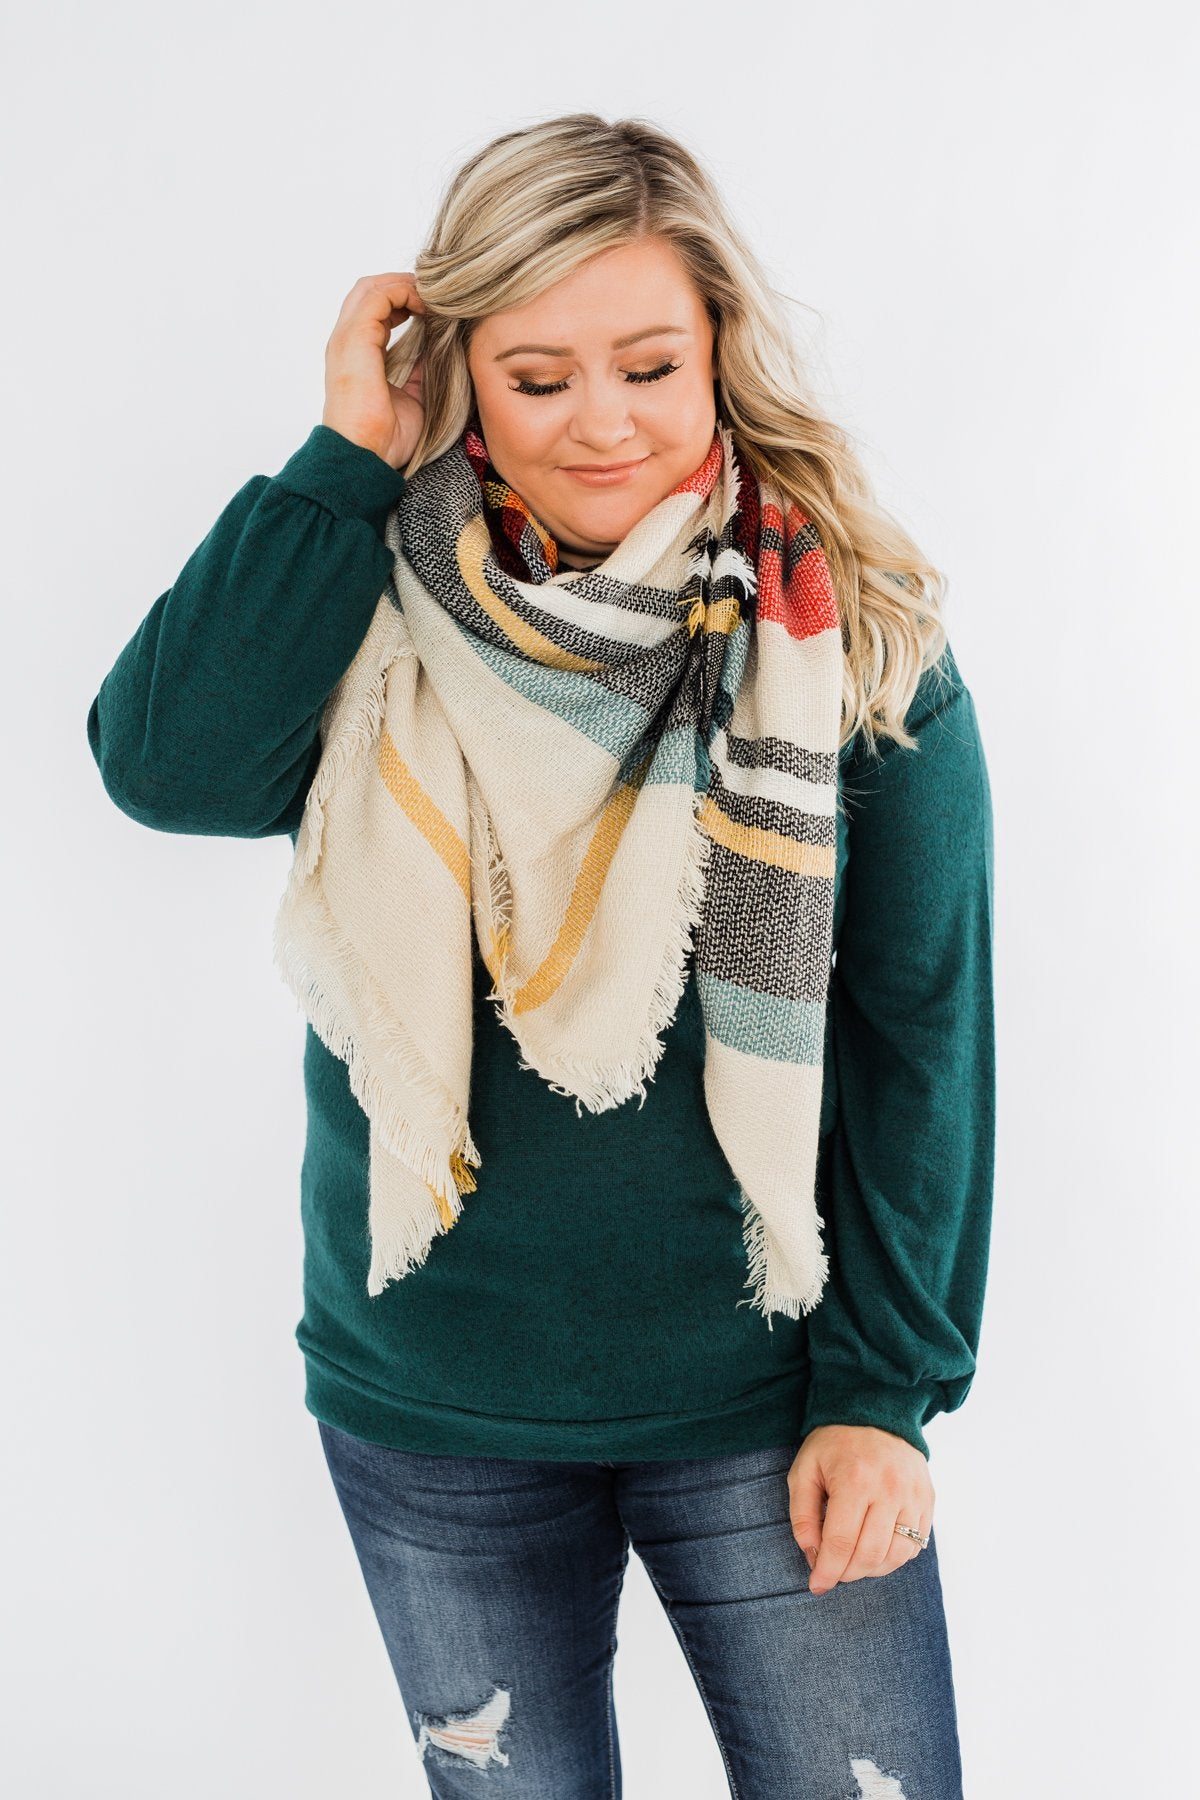 Blanket Scarf- Cream, Green, Mustard, & Red